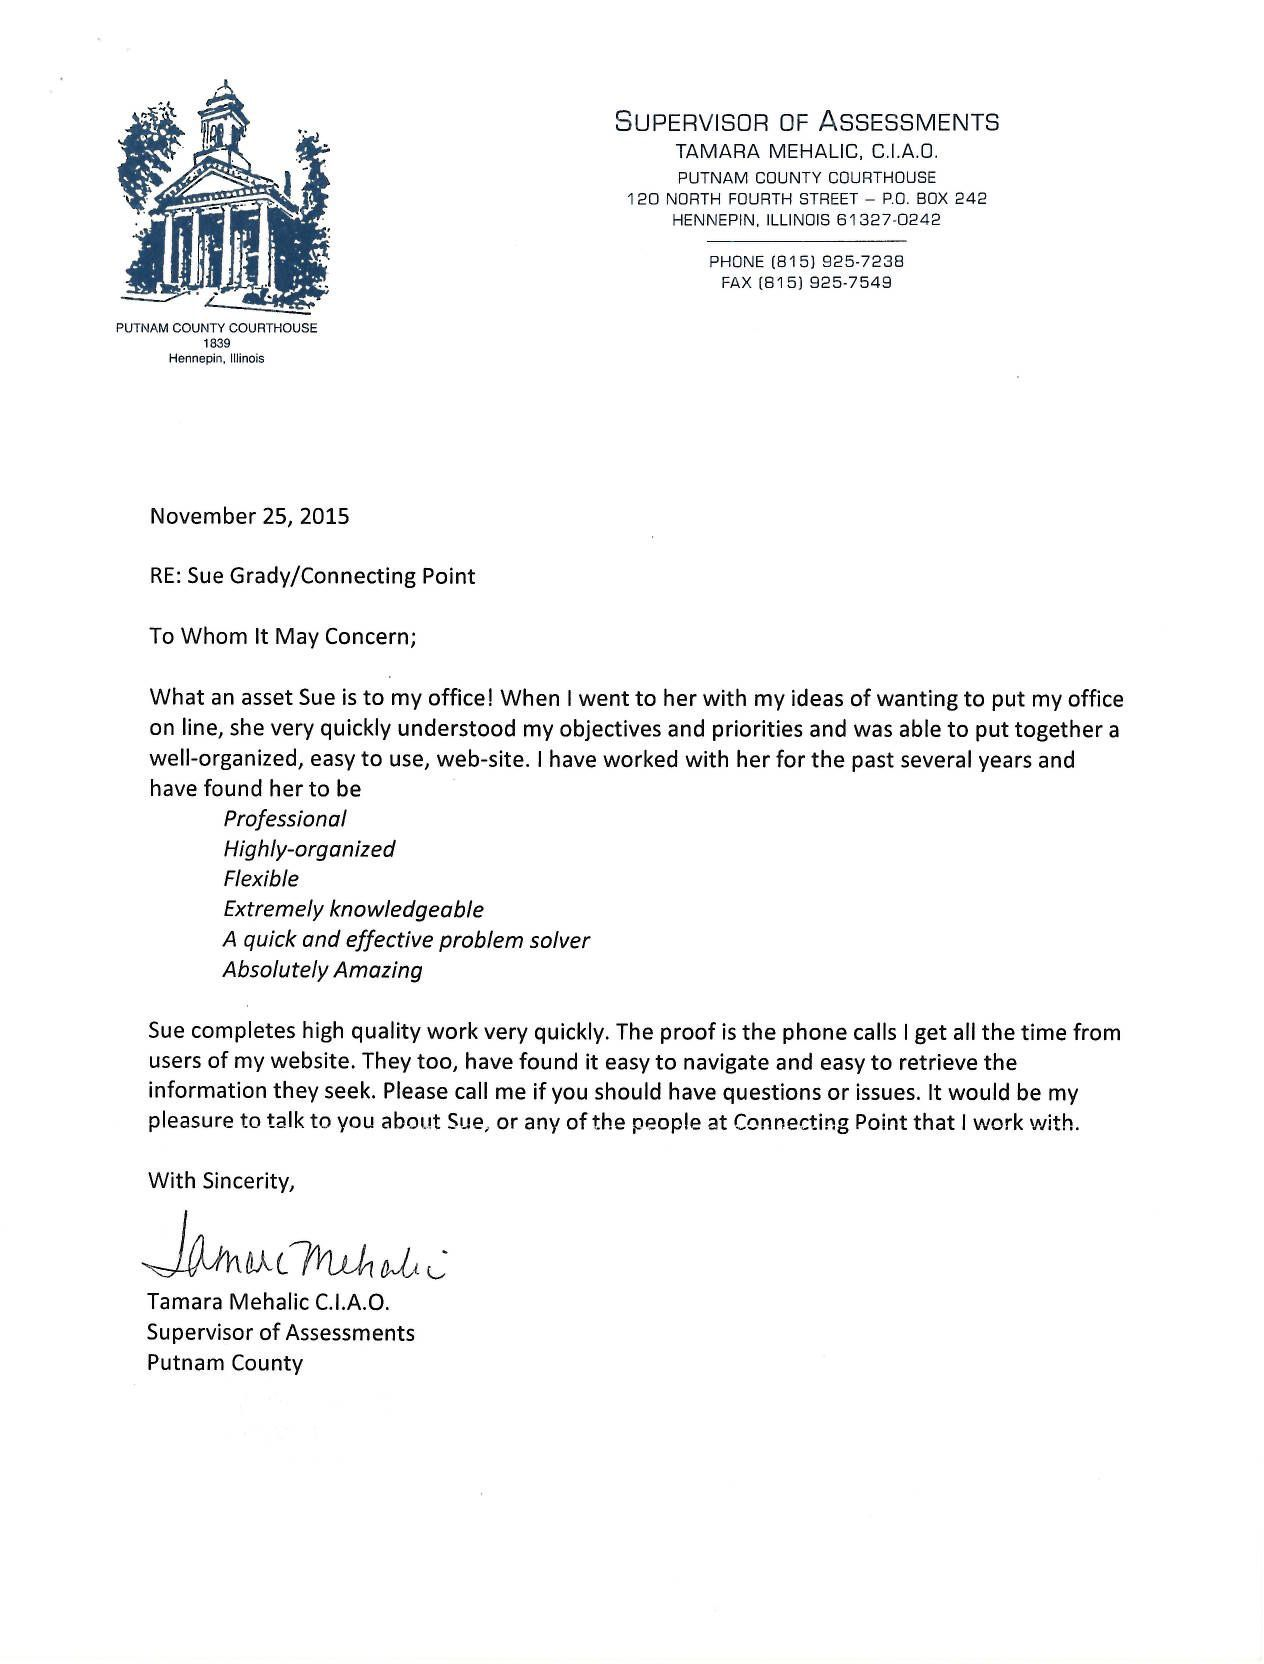 putnam county illinois soa website services testimonial